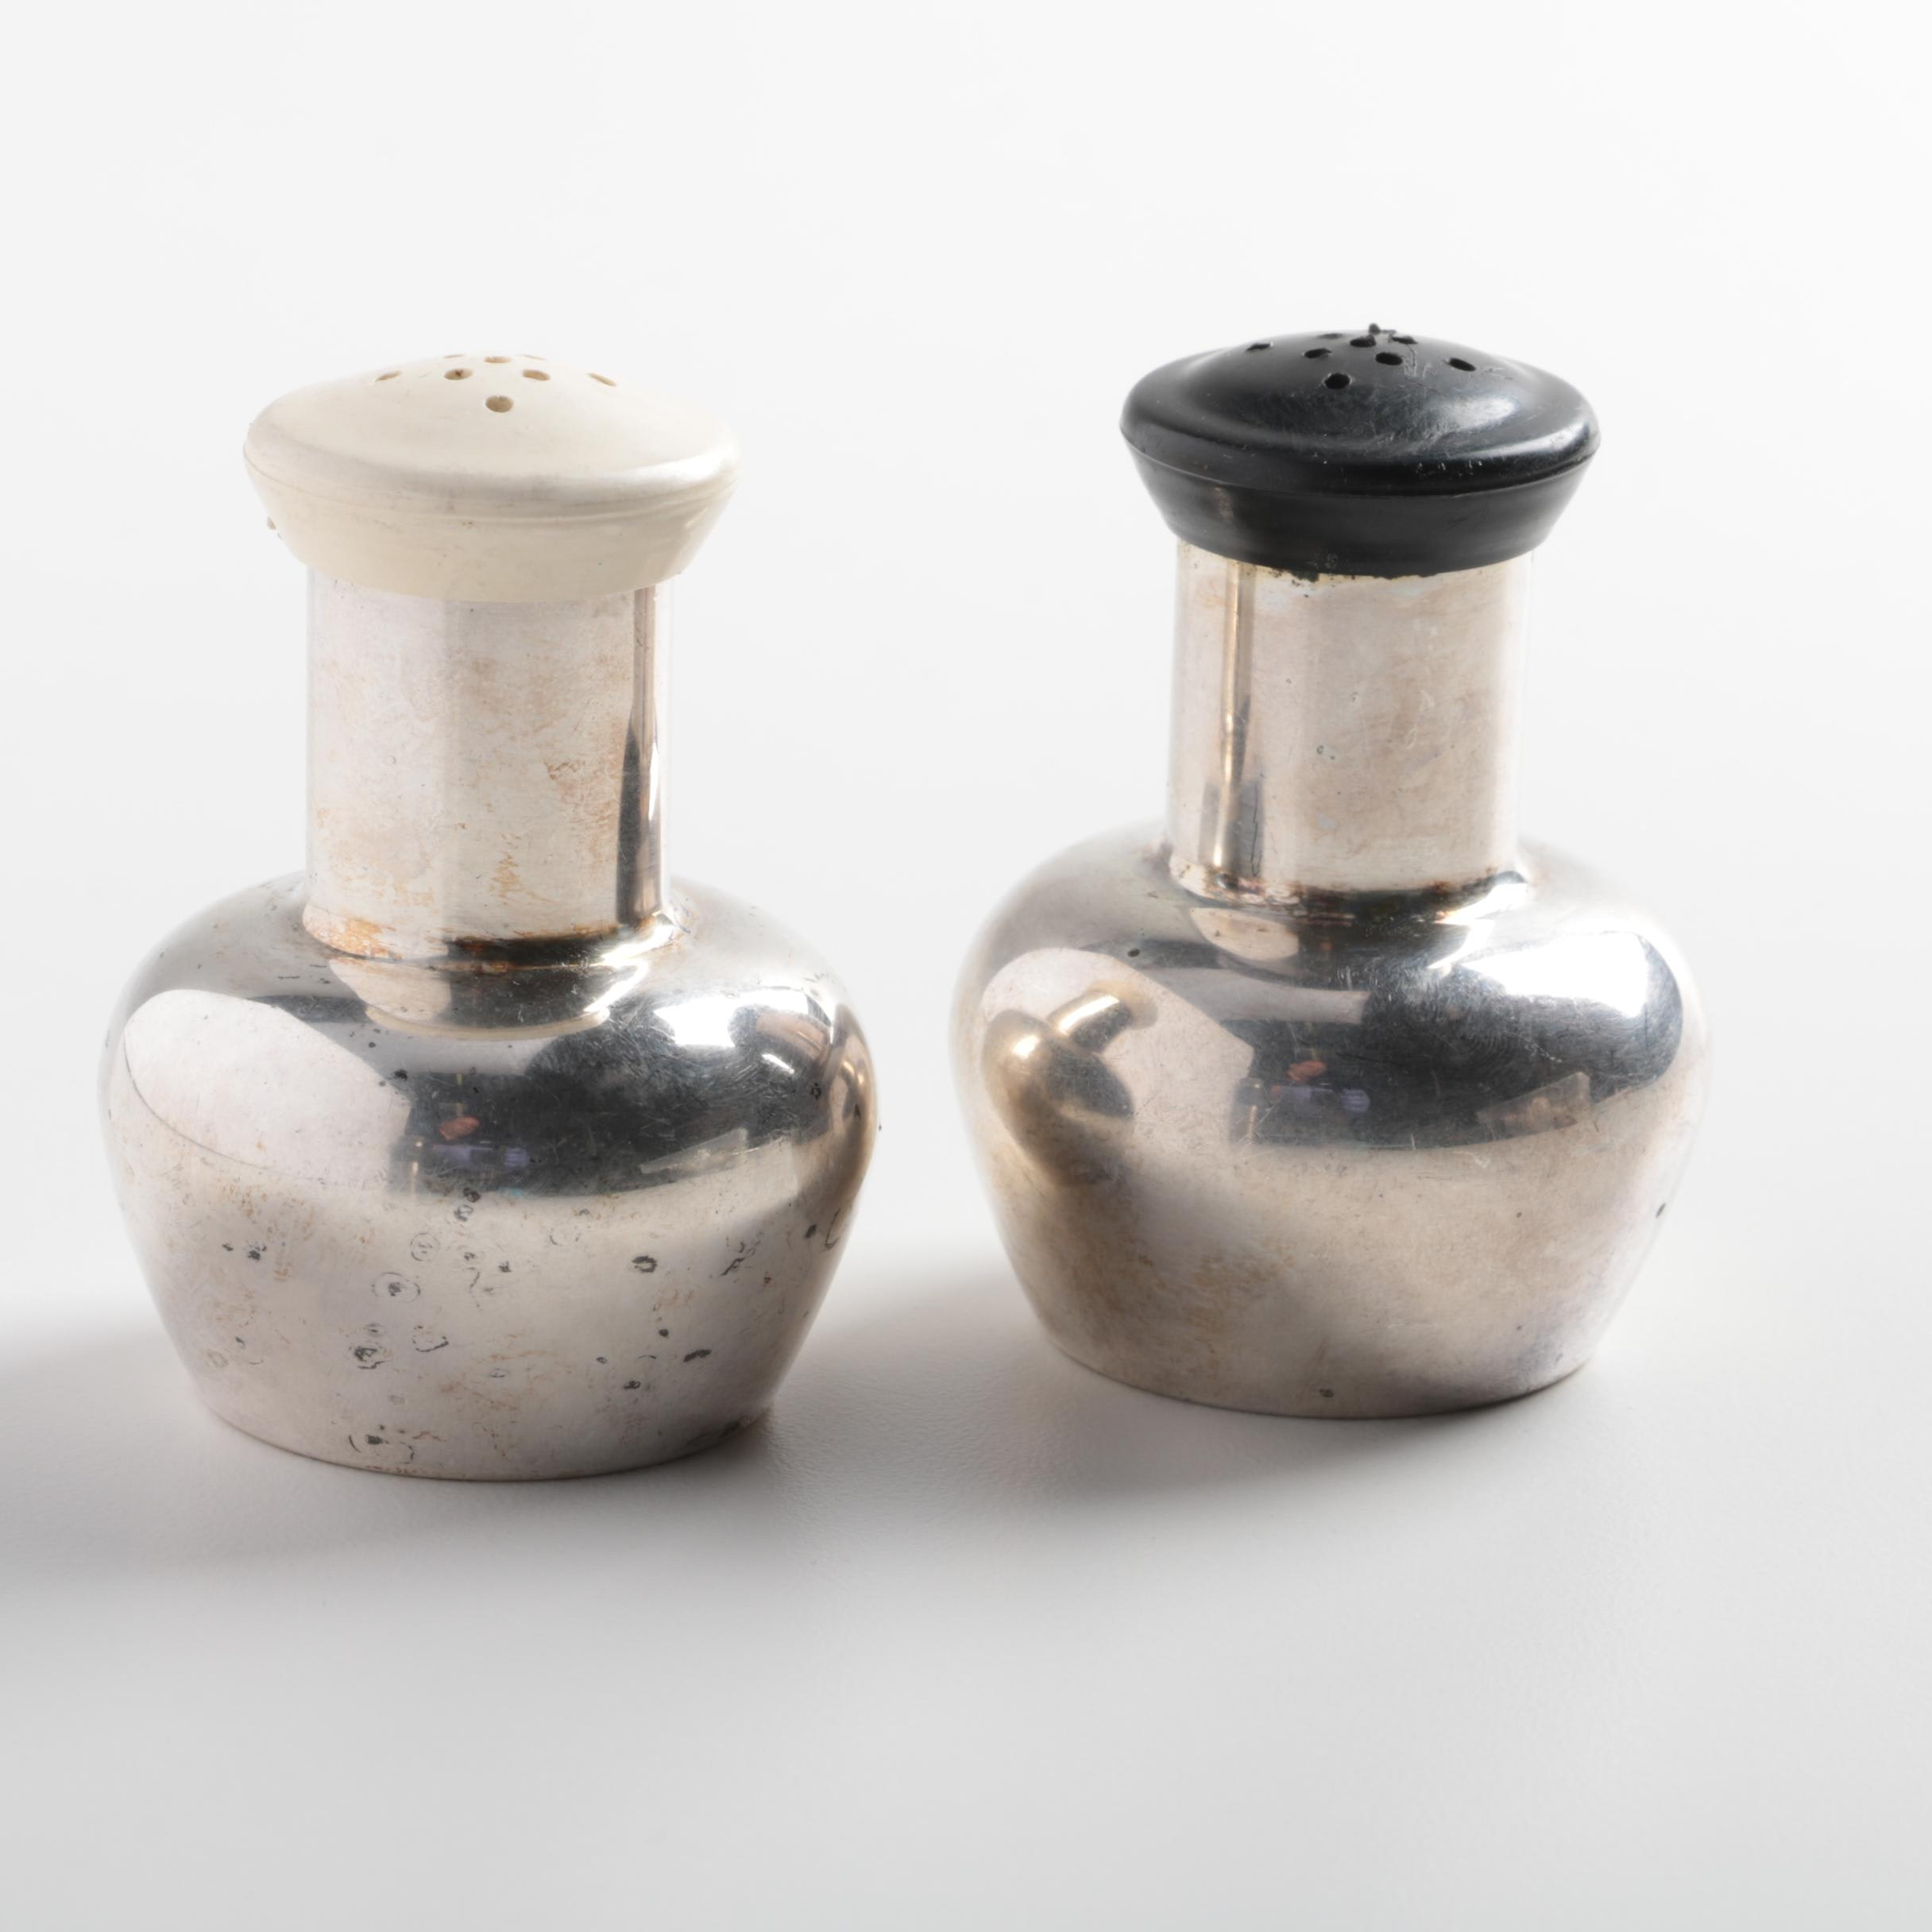 Modernist Style Silver Tone Salt and Pepper Shakers